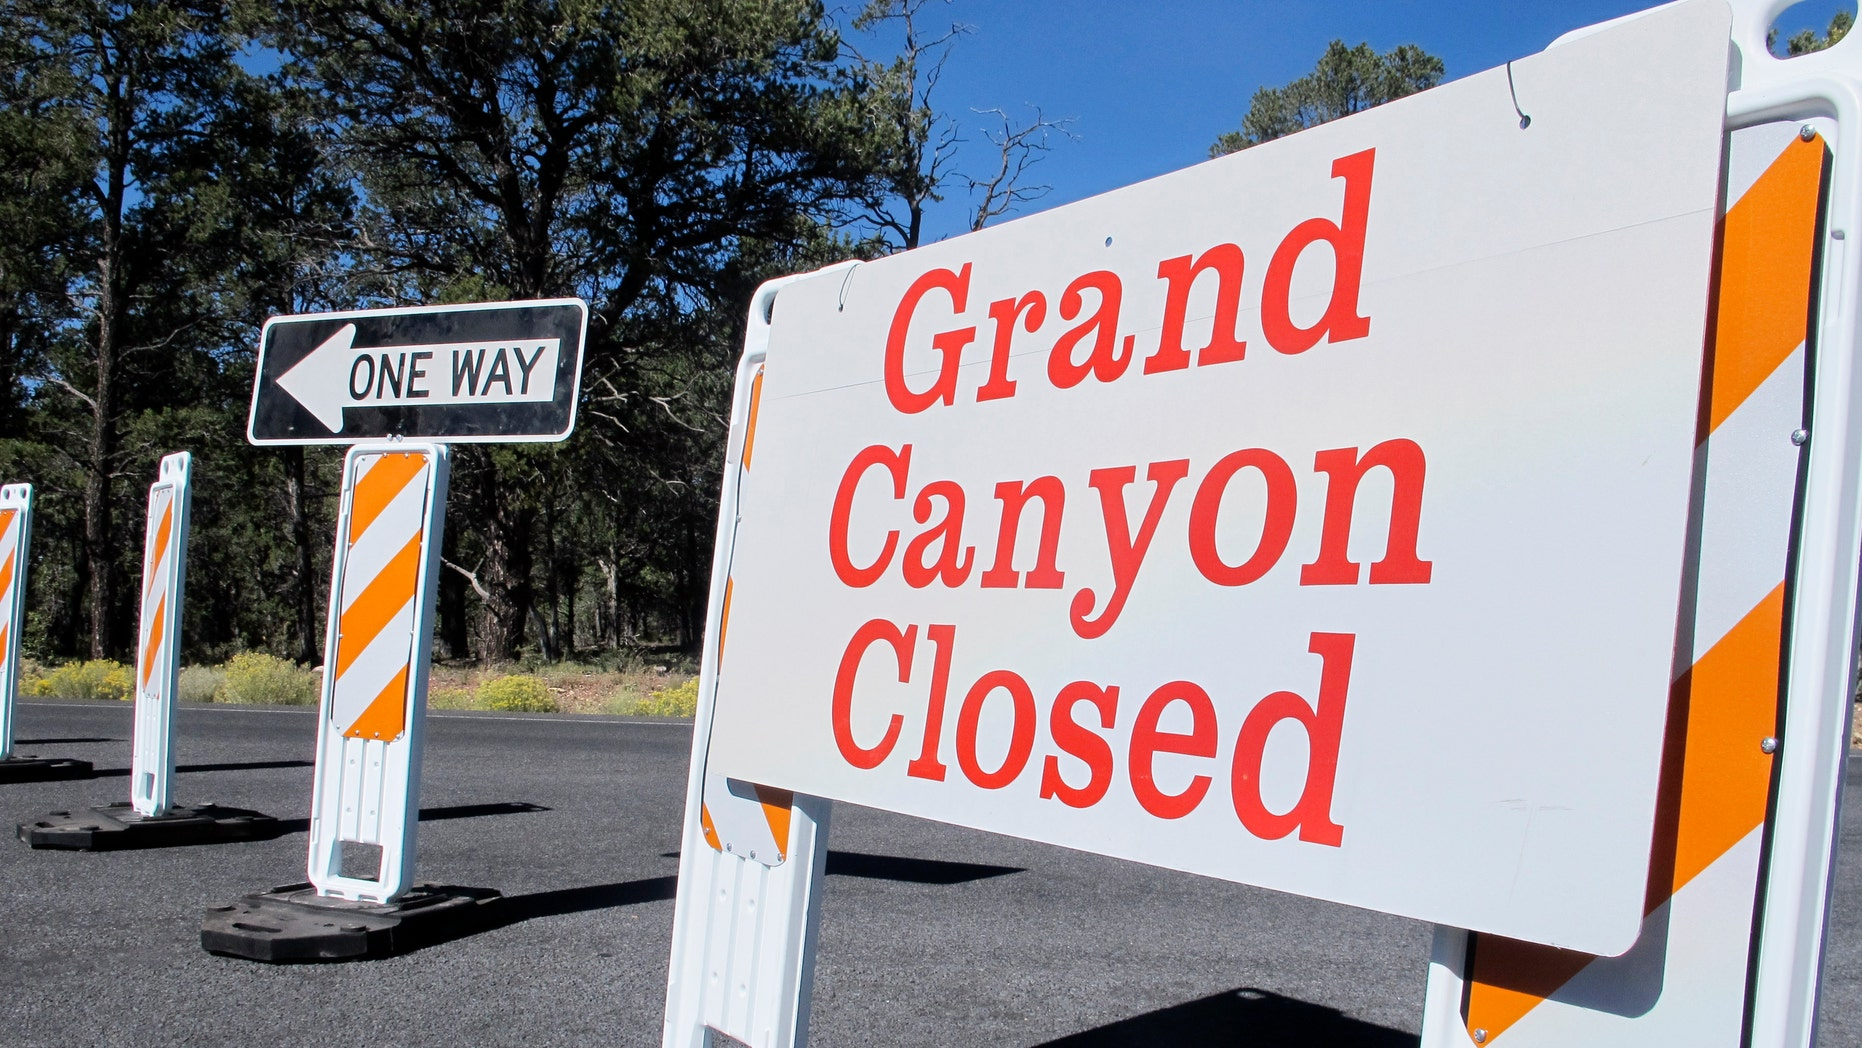 Many national parks closed because of the shutdown. Several governors, including Ariz. Gov. Jan Brewer, asked to reopen their parks because of the great loss of tourism money caused by their closing.